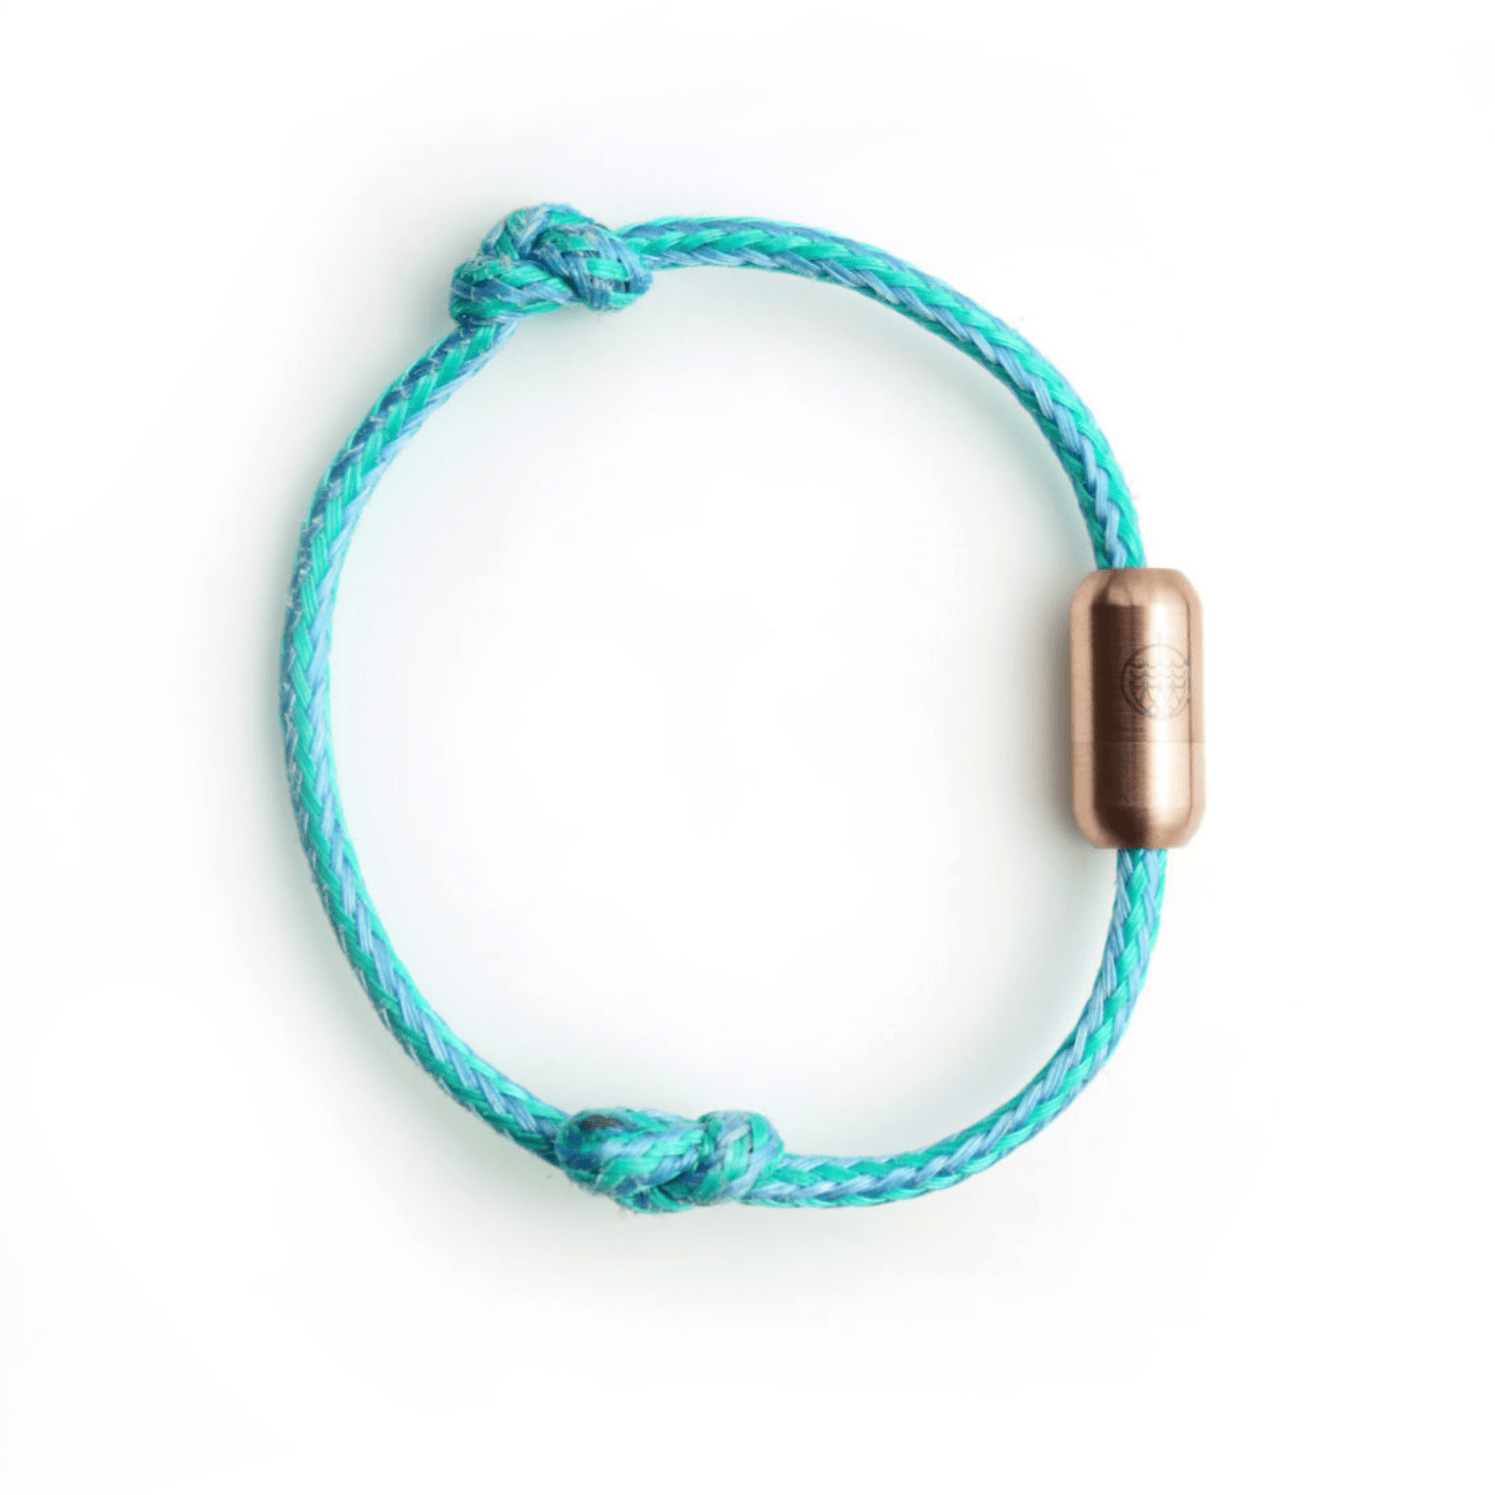 North Sea II sustainable bracelet of upcycled fishing nets